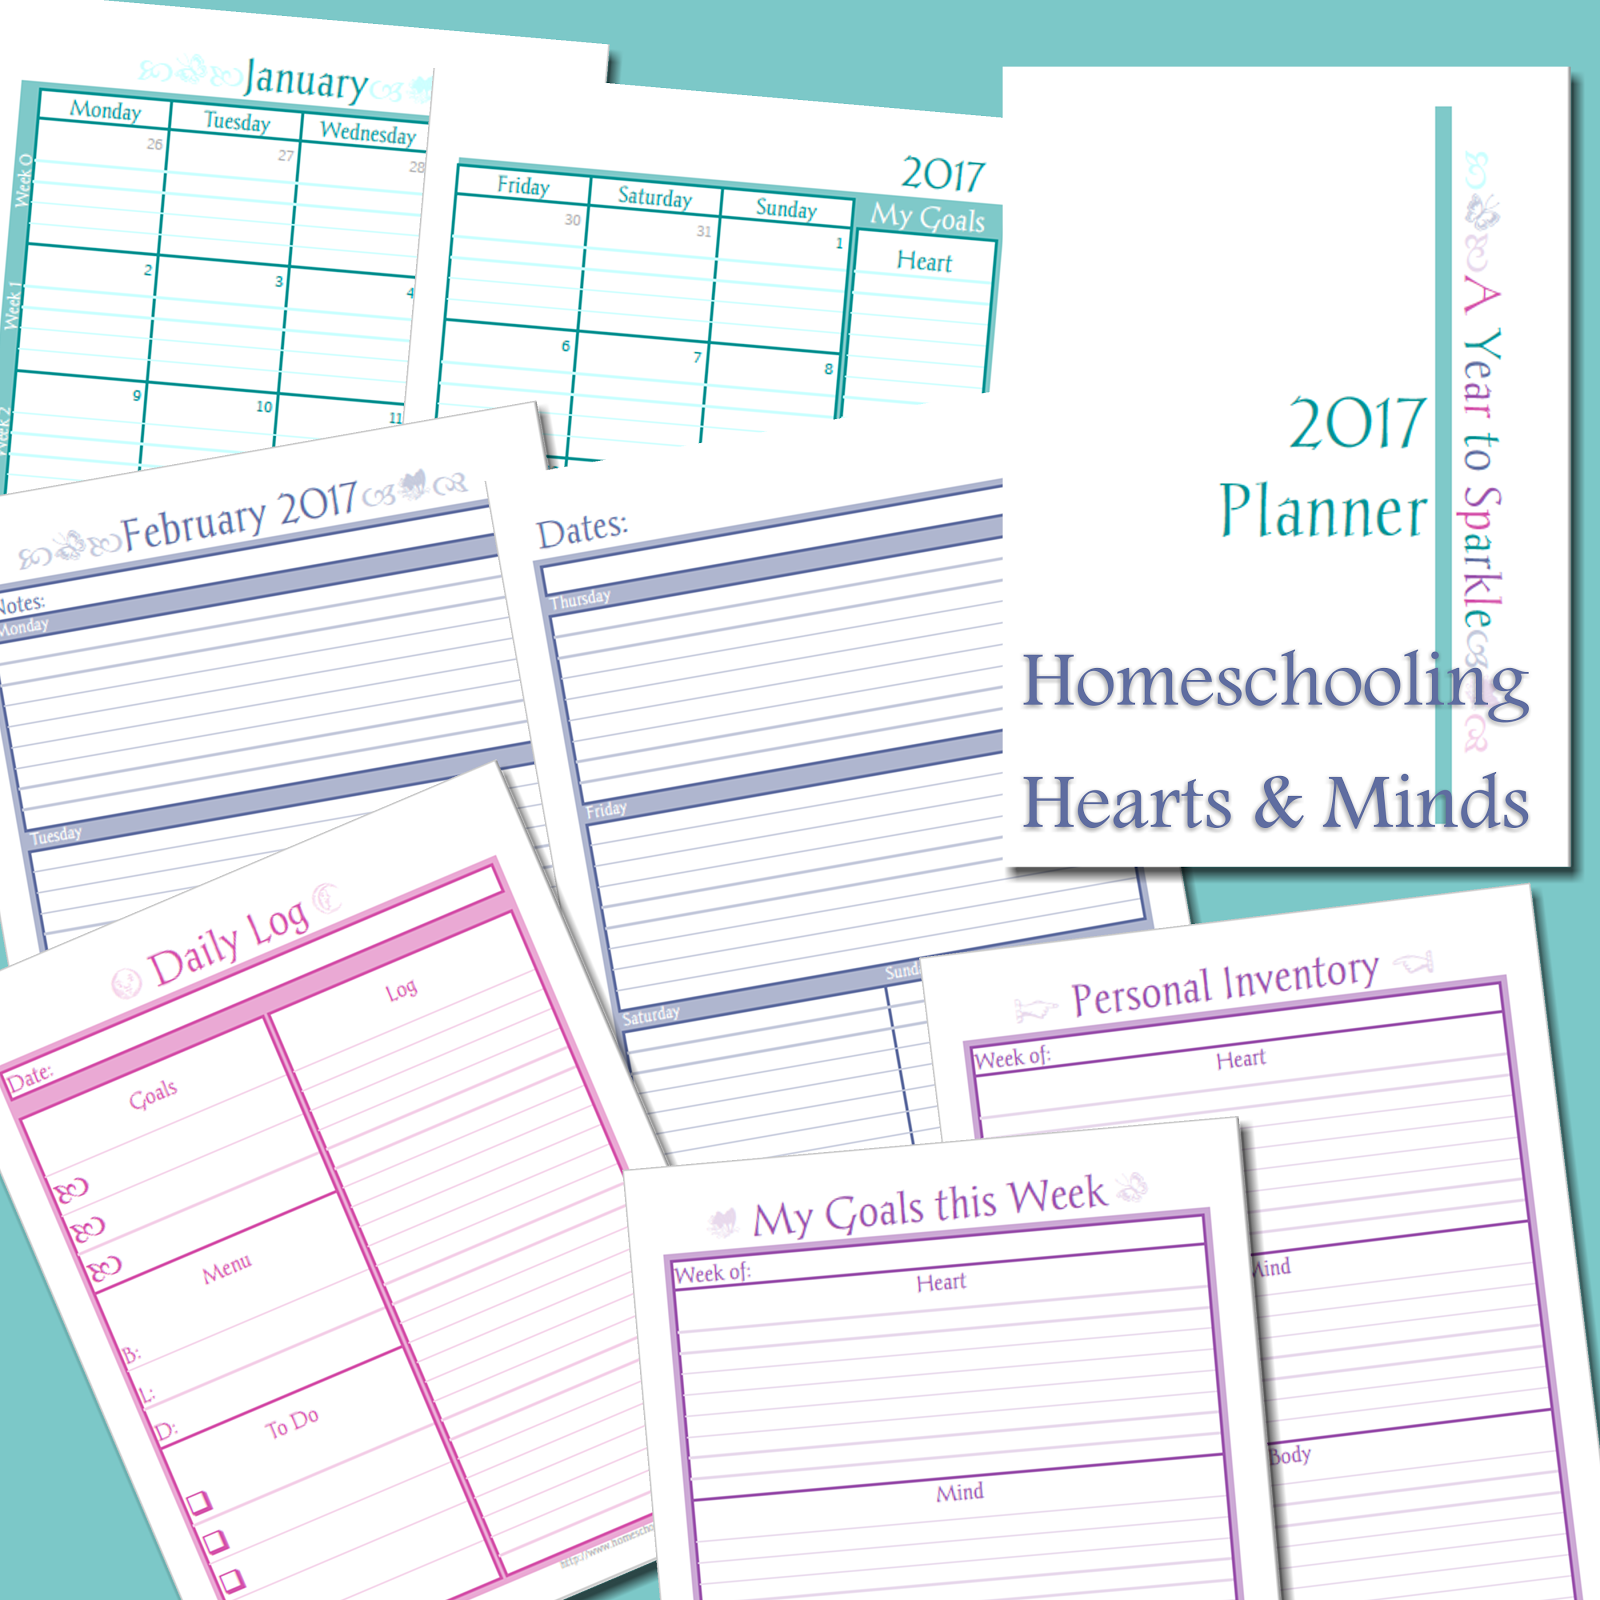 Get the Year to Sparkle Planner for Free!